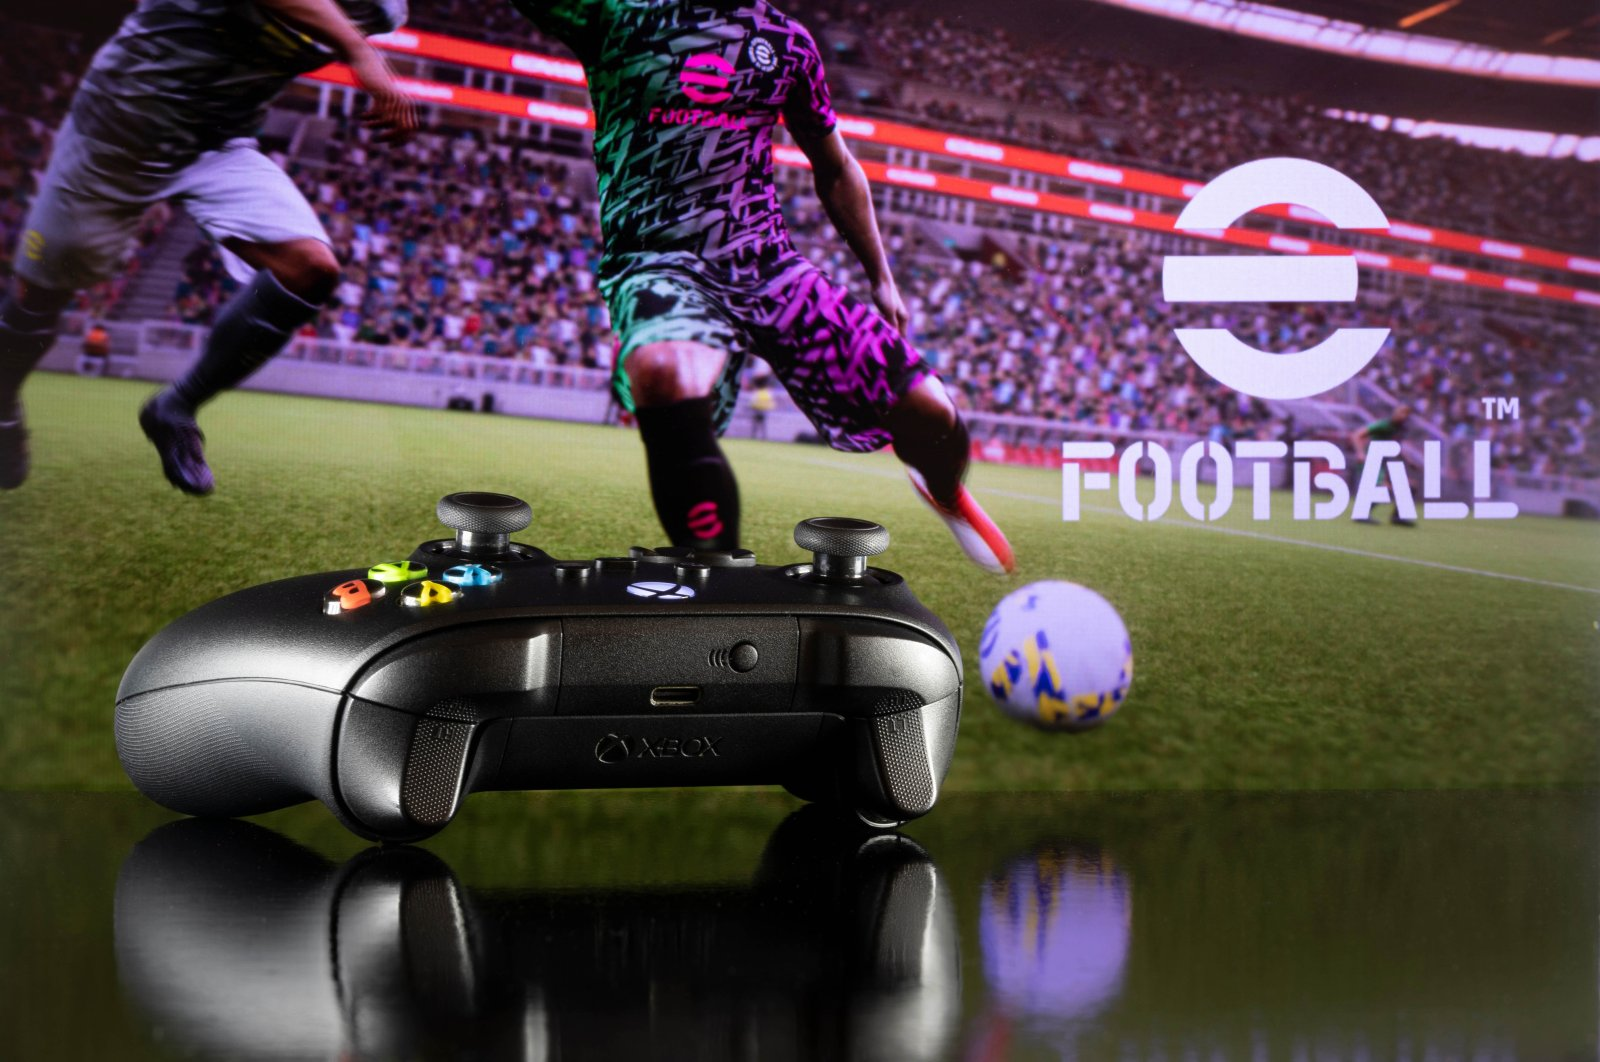 """An Xbox controller stands on a table with Konami's """"eFootball"""" game visible in the background, Sao Paulo, Brazil, July 26, 2021. (Shutterstock Photo)"""